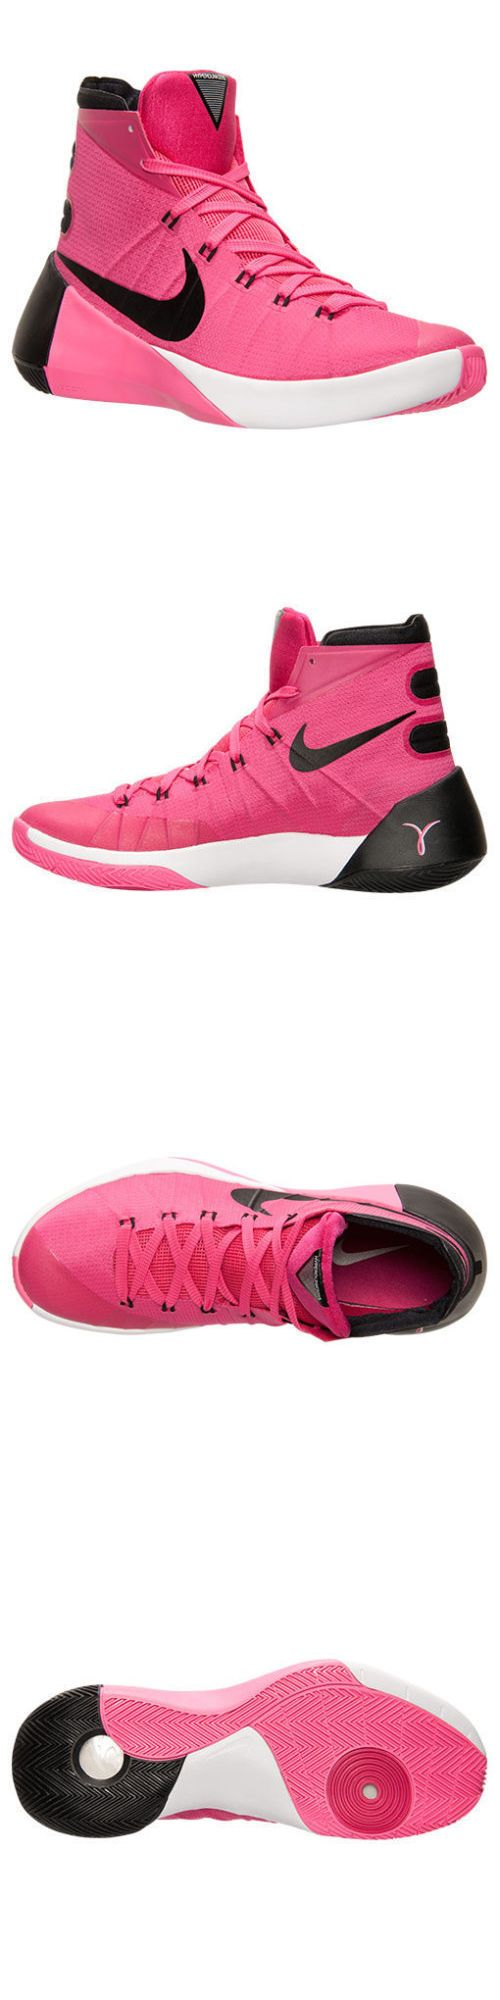 Basketball: $140 New Nike Hyperdunk Mens Basketball Shoes Size 14 Pink Black Breast Cancer BUY IT NOW ONLY: $129.99